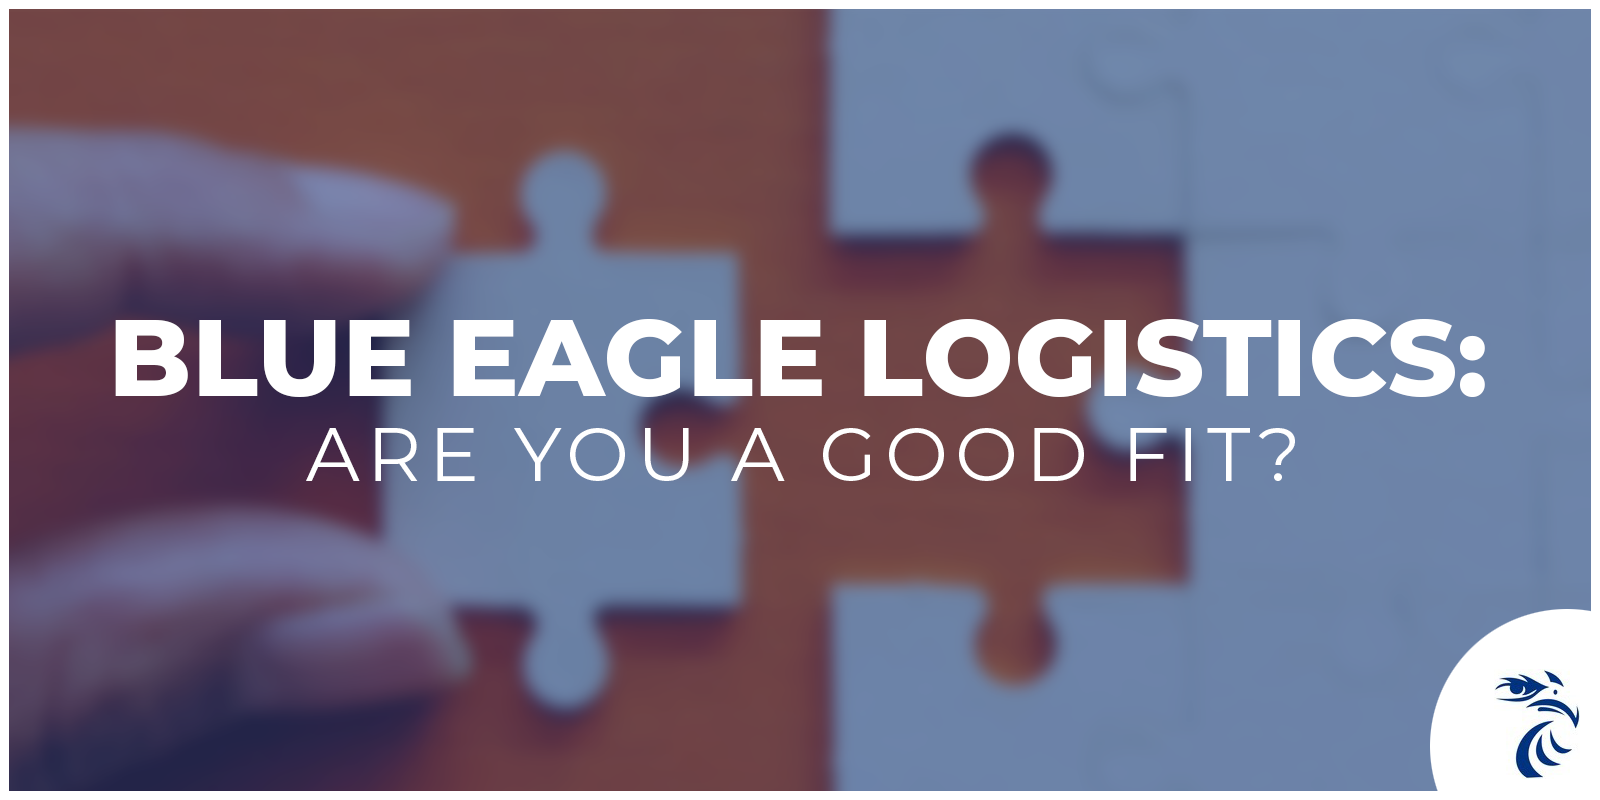 puzzle pieces with tagline: Blue Eagle Logistcs, Are you a good fit?